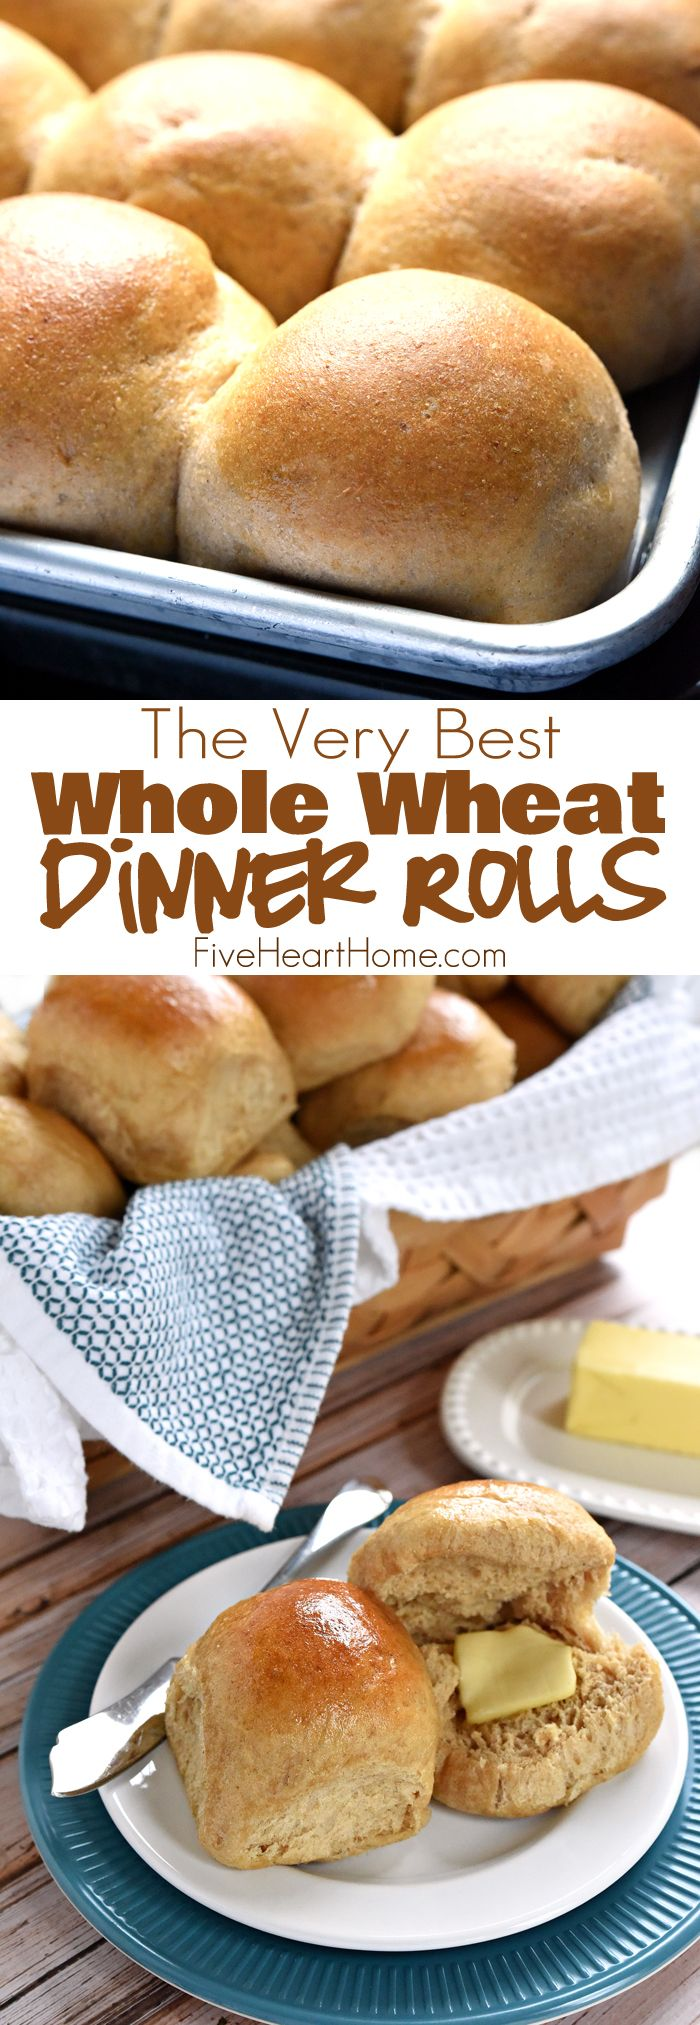 Homemade Whole Wheat Dinner Rolls ~ adapted from our incredibly popular Homemade Whole Wheat Bread recipe, these 100% whole wheat dinner rolls are soft, pillowy, moist, easy to make, and truly the BEST! | FiveHeartHome.com